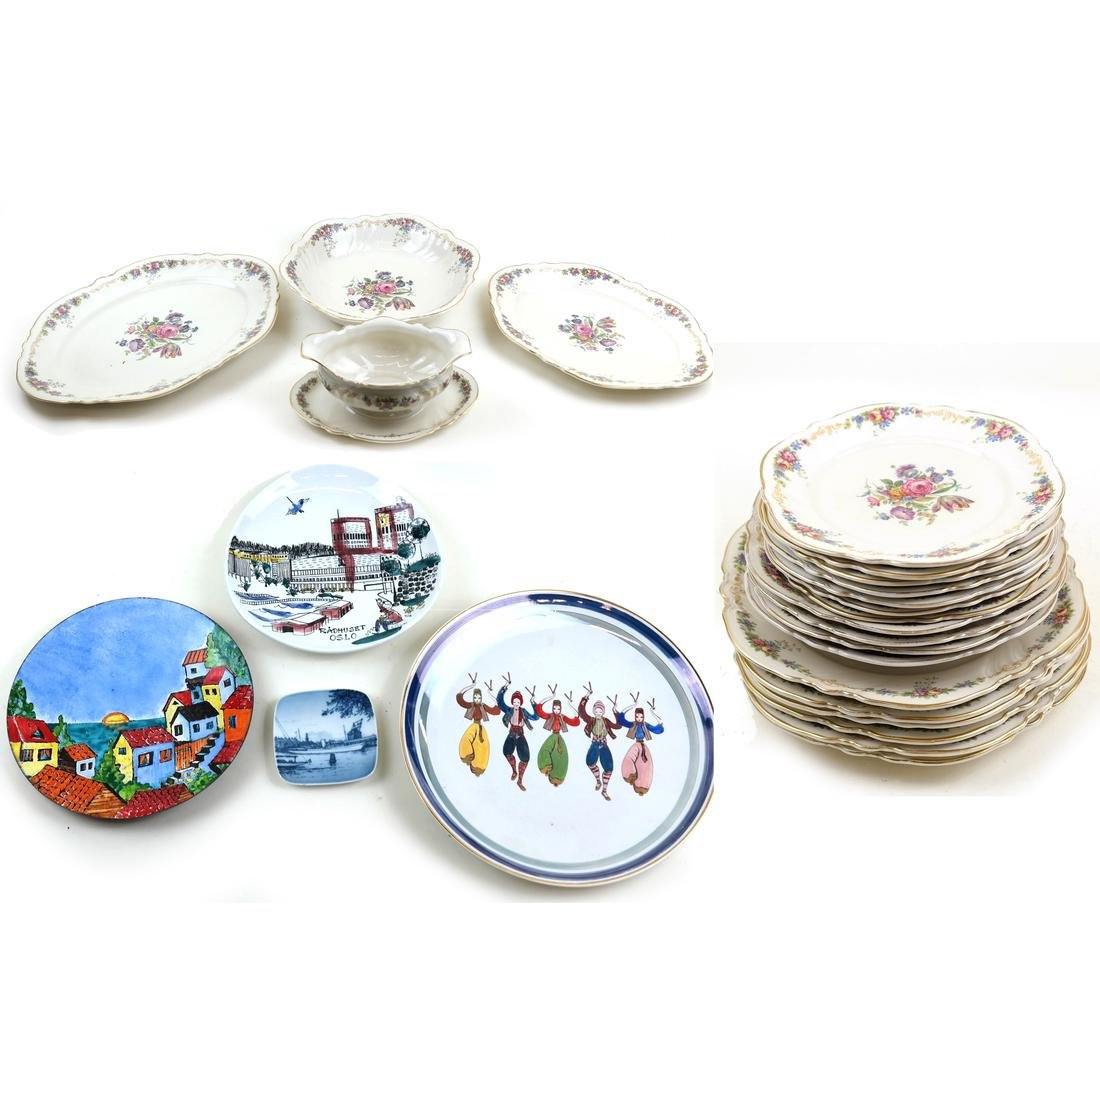 Rosenthal Dinnerware and Others